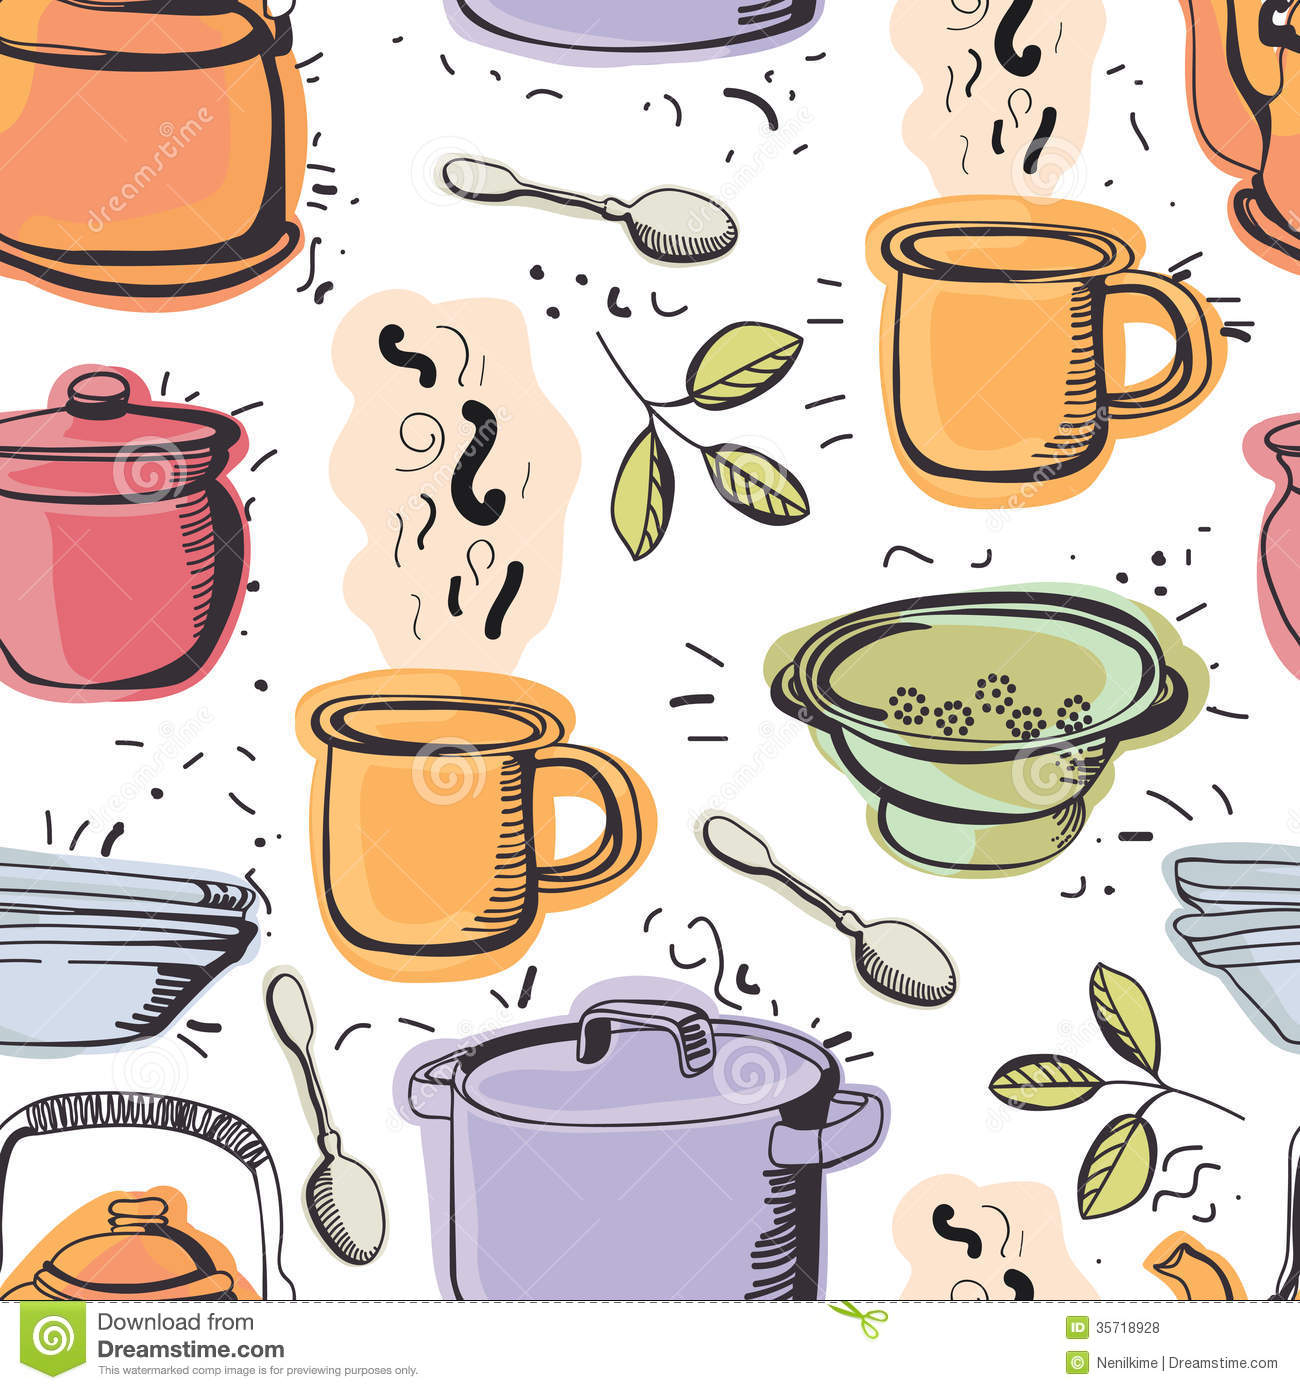 Kitchen seamless pattern royalty free stock photos image for Kitchen patterns and designs